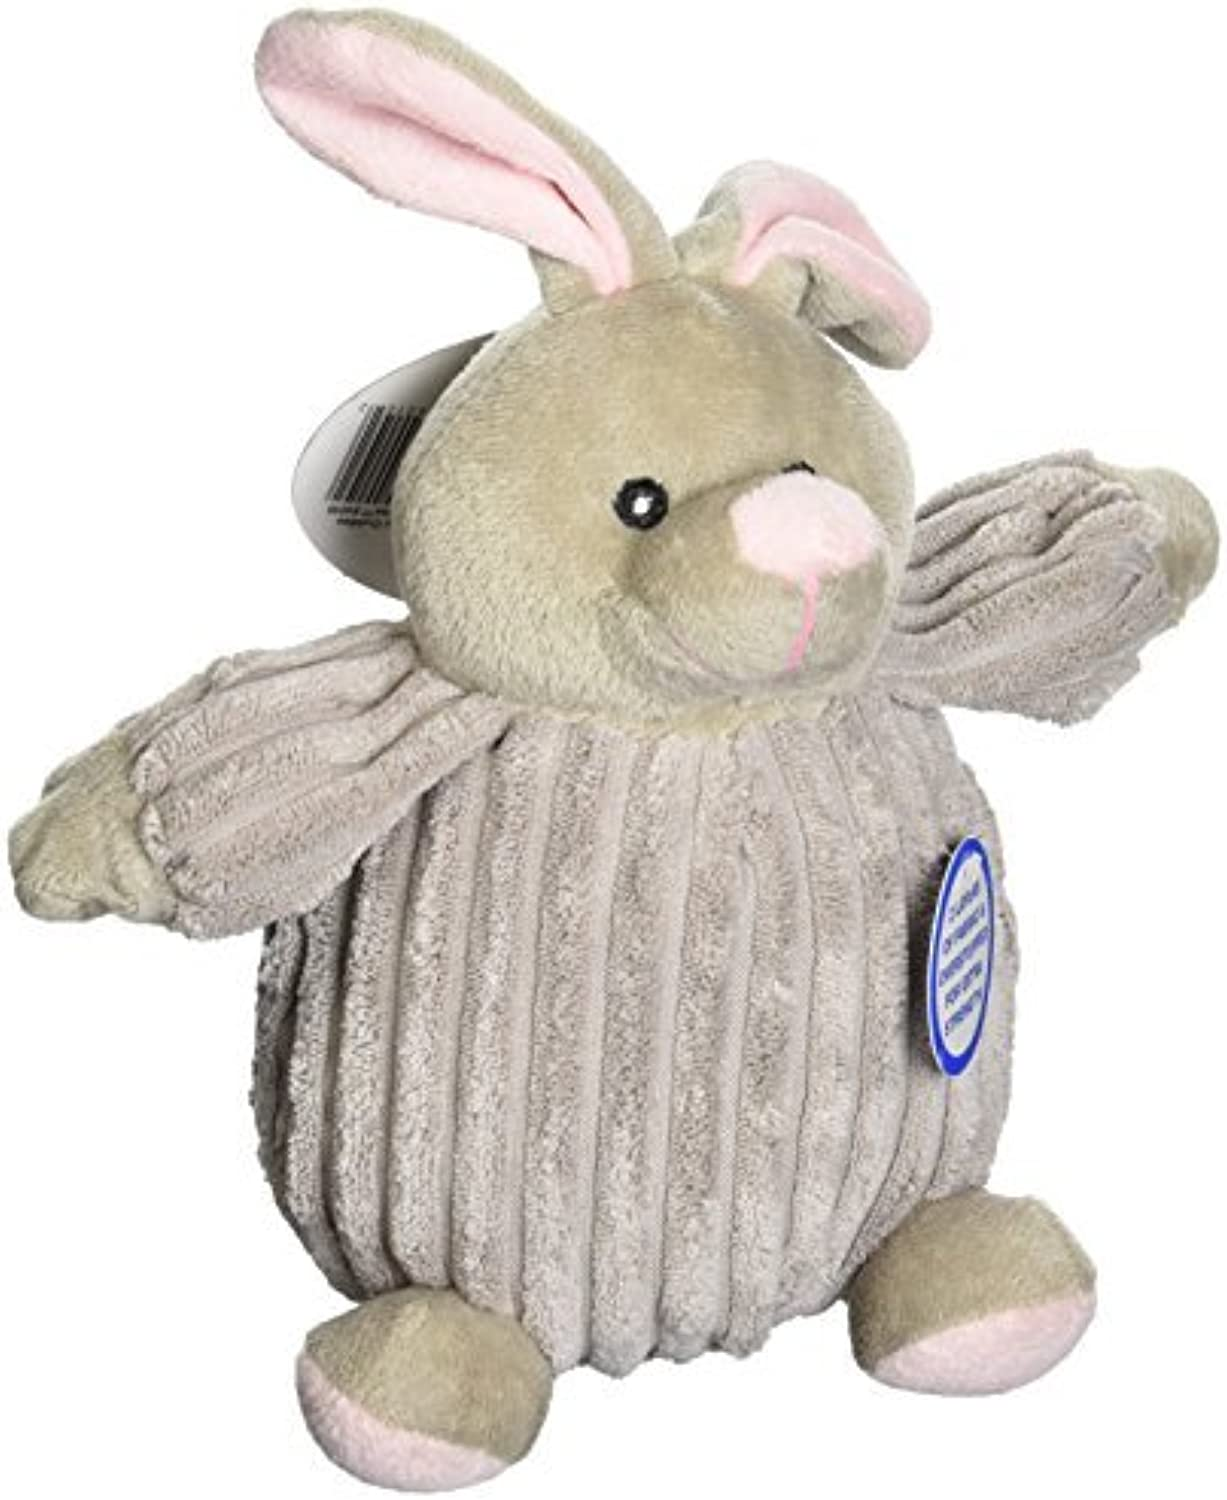 Ethical Pets Corduroy Cuddles Bubble Bodies Plush Dog Toy, 7Inch by Ethical Pets